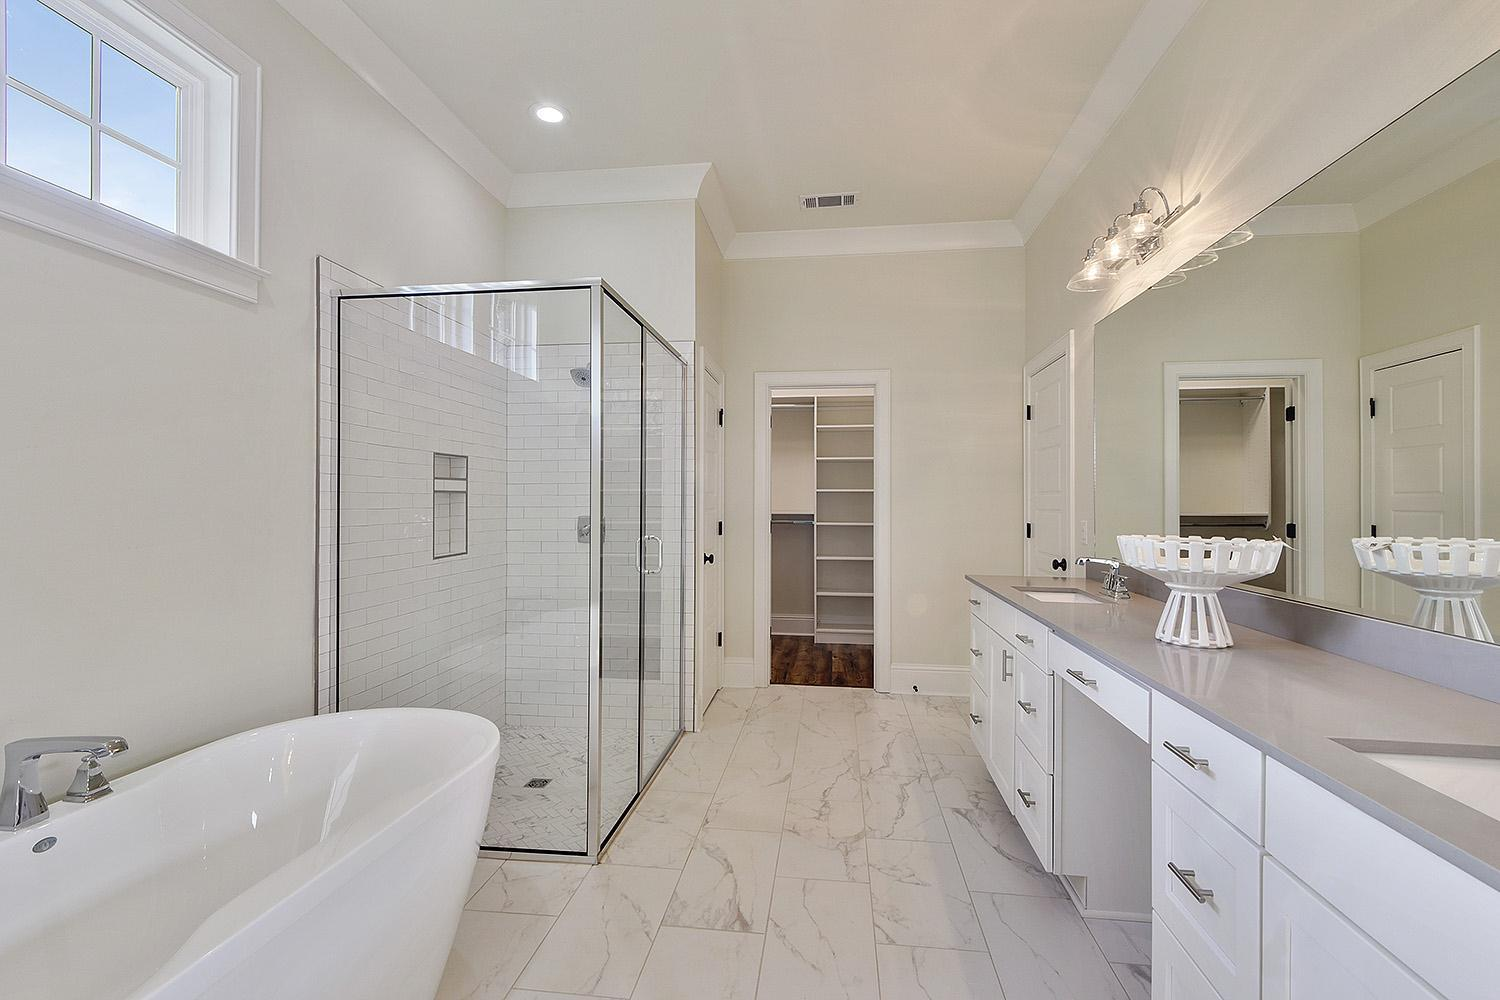 Bathroom featured in the Loren By Highland Homes in New Orleans, LA